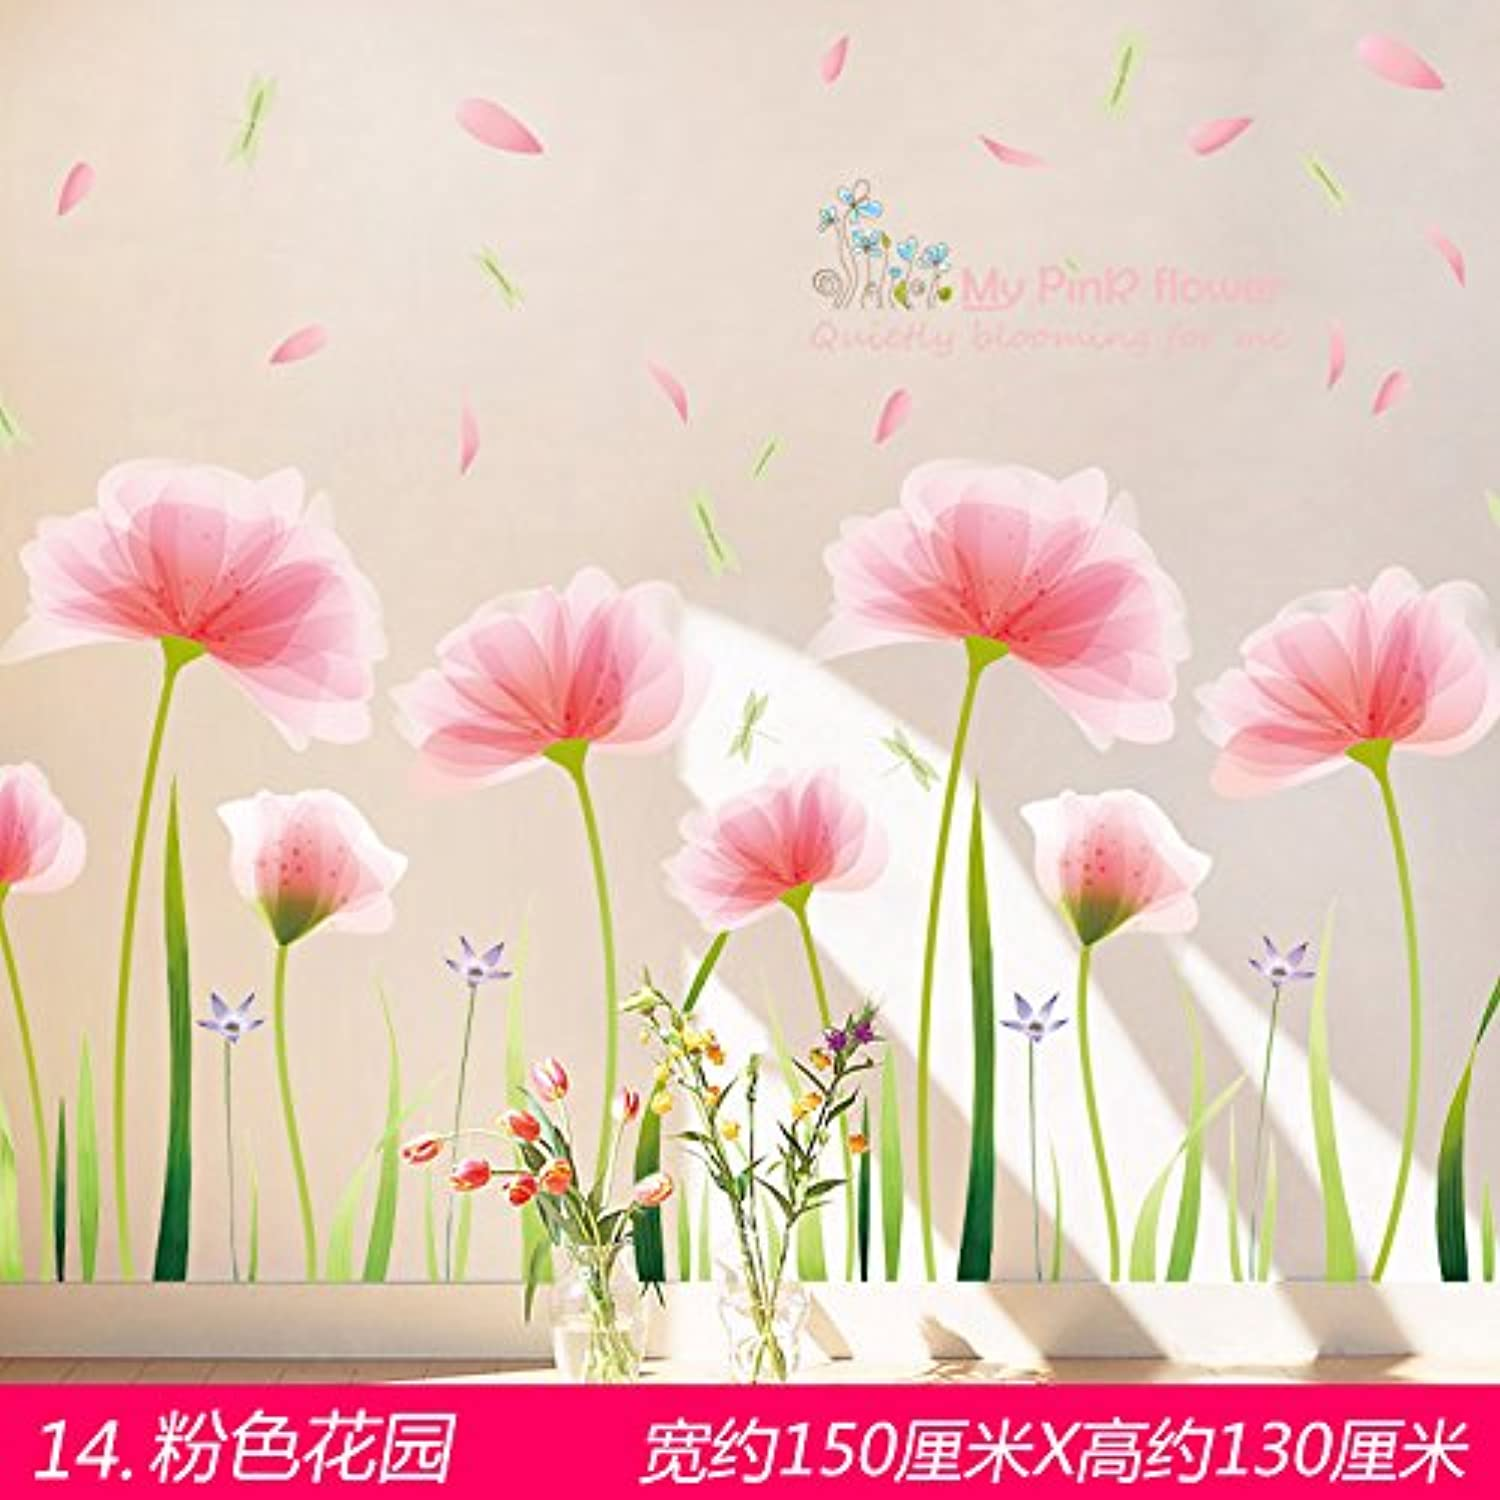 Znzbzt Wall Paper SelfAdhesive Living Room Wall Painting Wall Posters Wall,14. Pink Garden, King